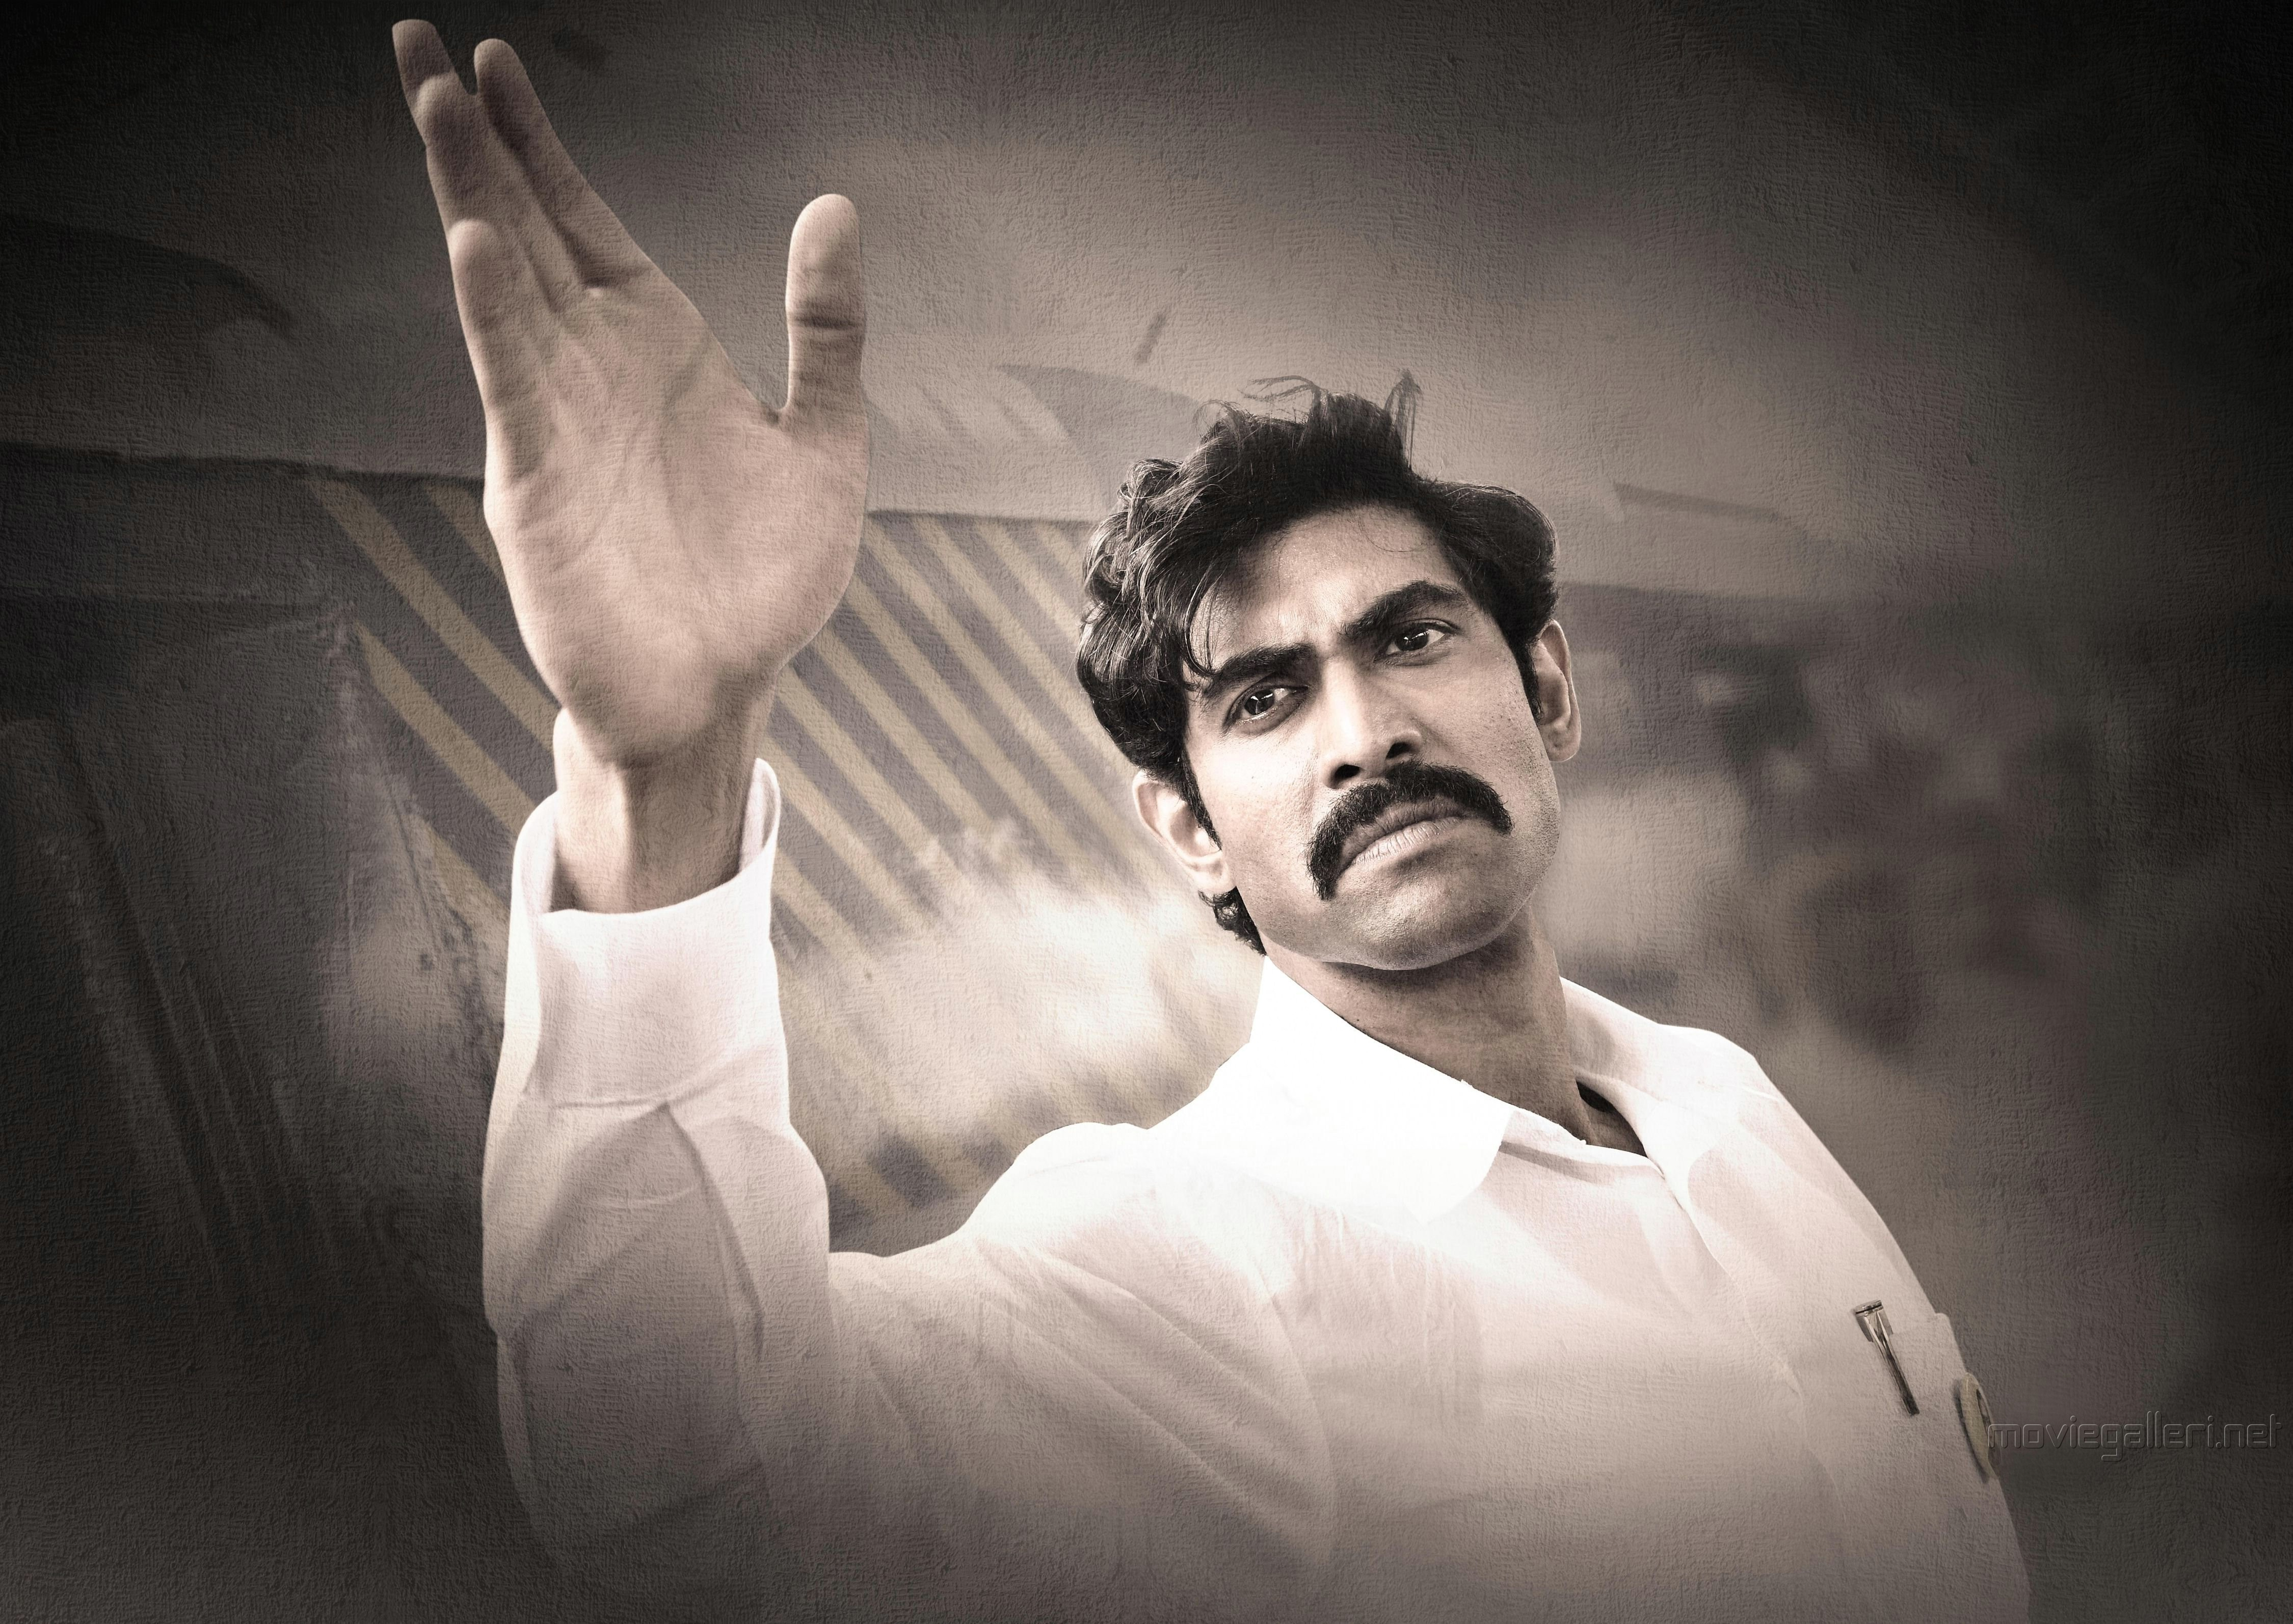 Introducing Rana Daggubati as Nara Chandrababu Naidu from NTR Biopic HD Wallpaper